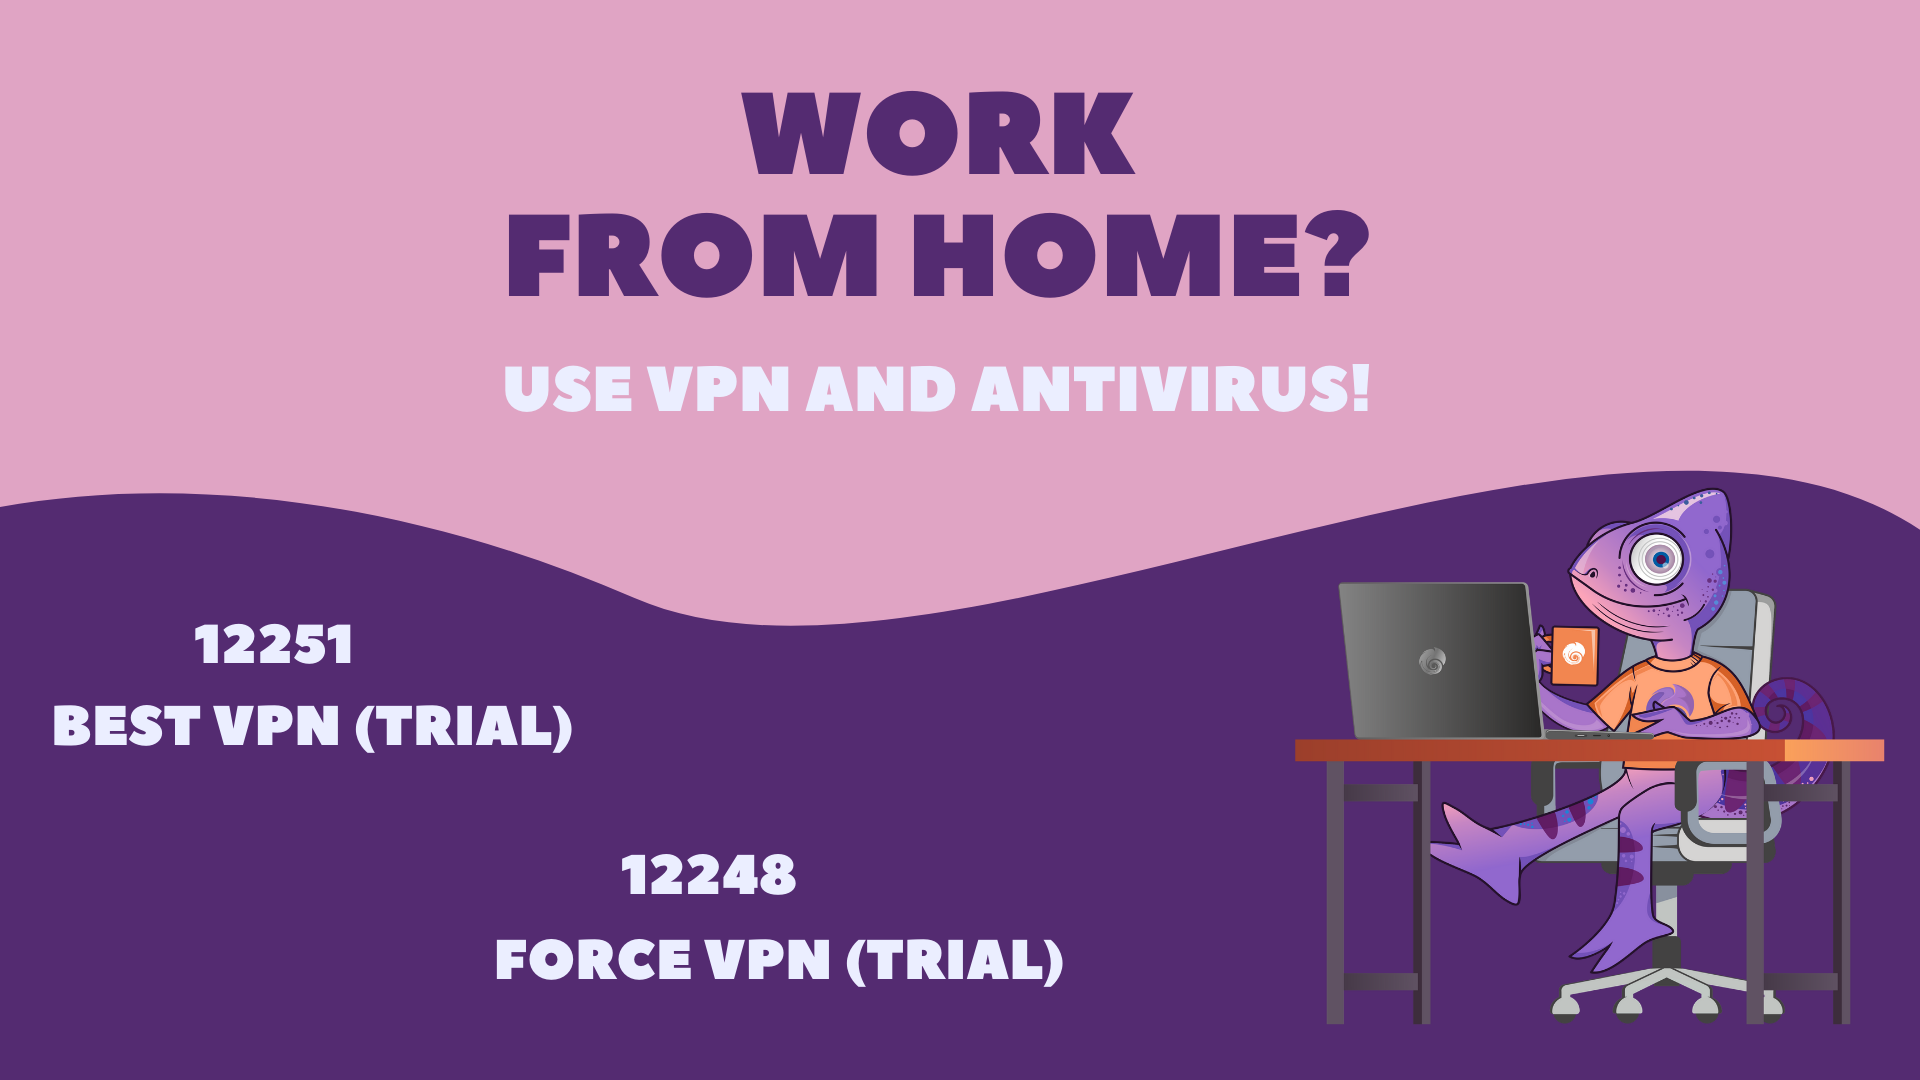 Work From Home Use VPN, копия.png